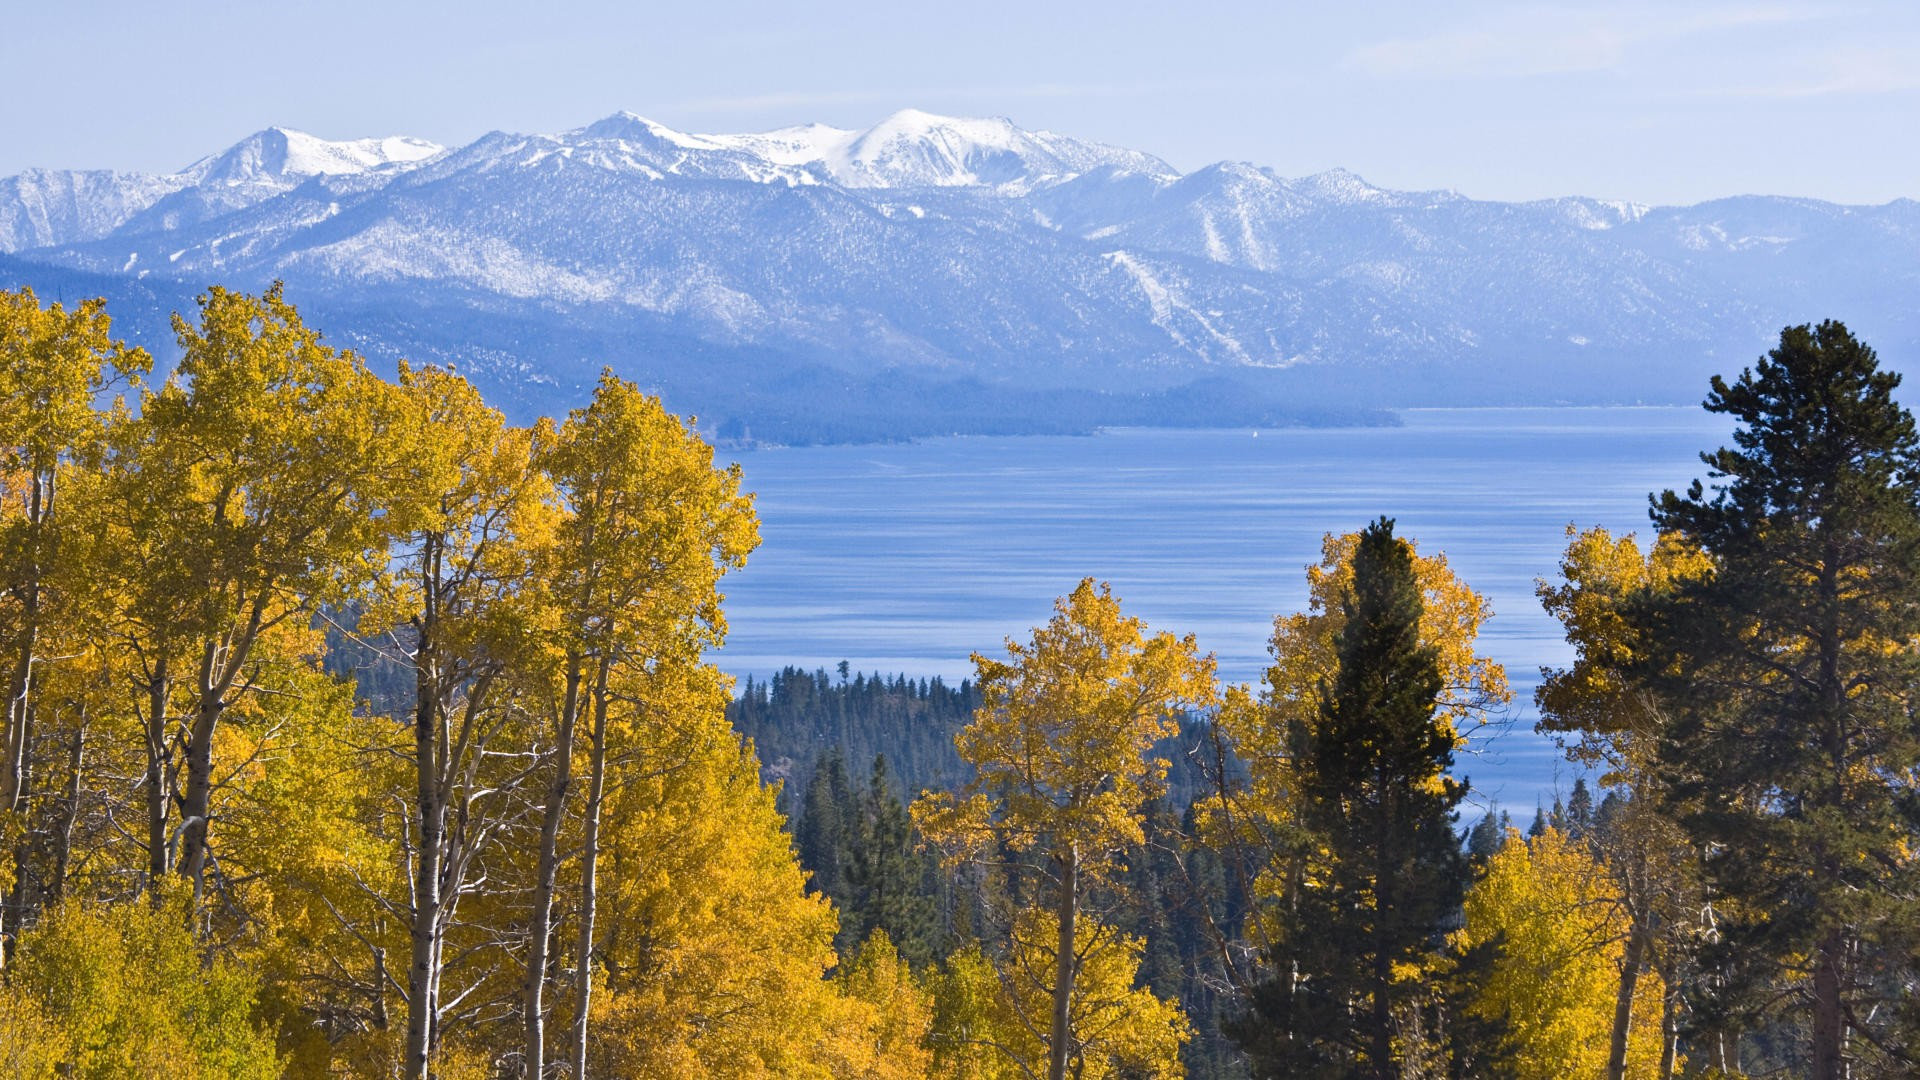 autumn California Lake Tahoe wallpaper background 1920x1080